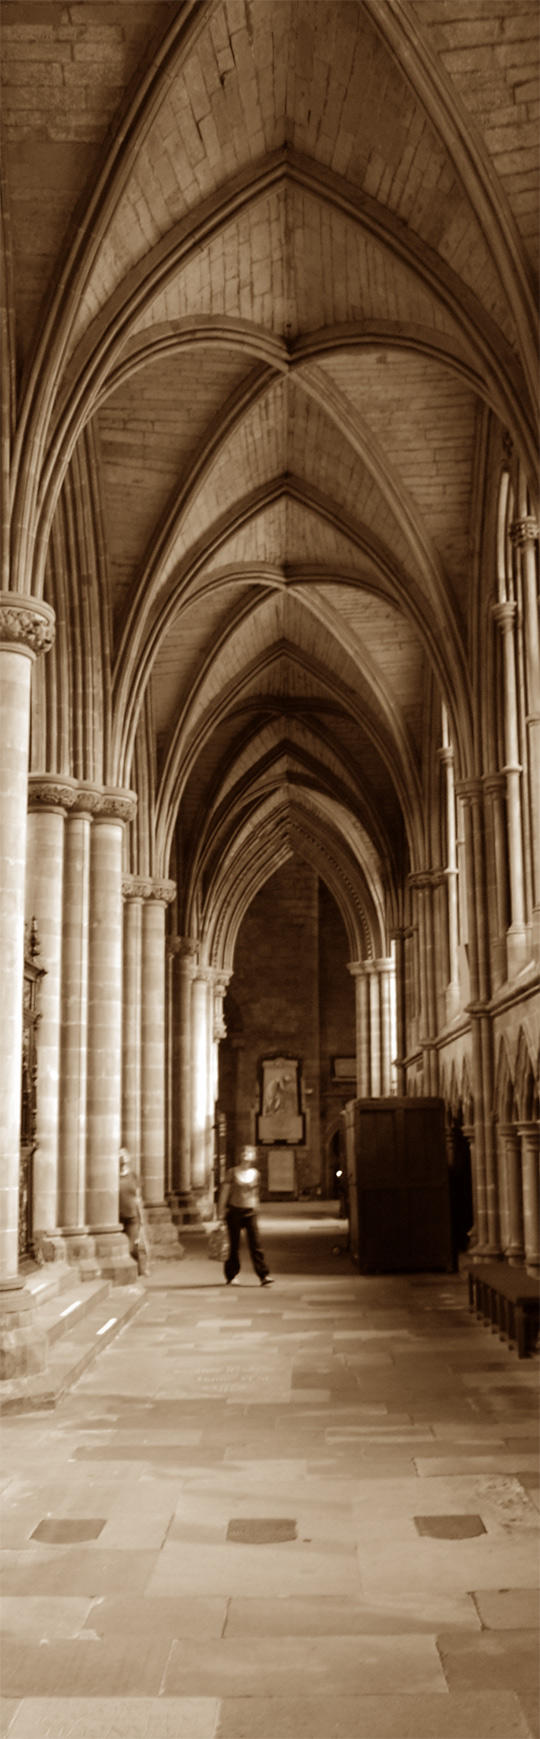 Cathedral by graemeskinner